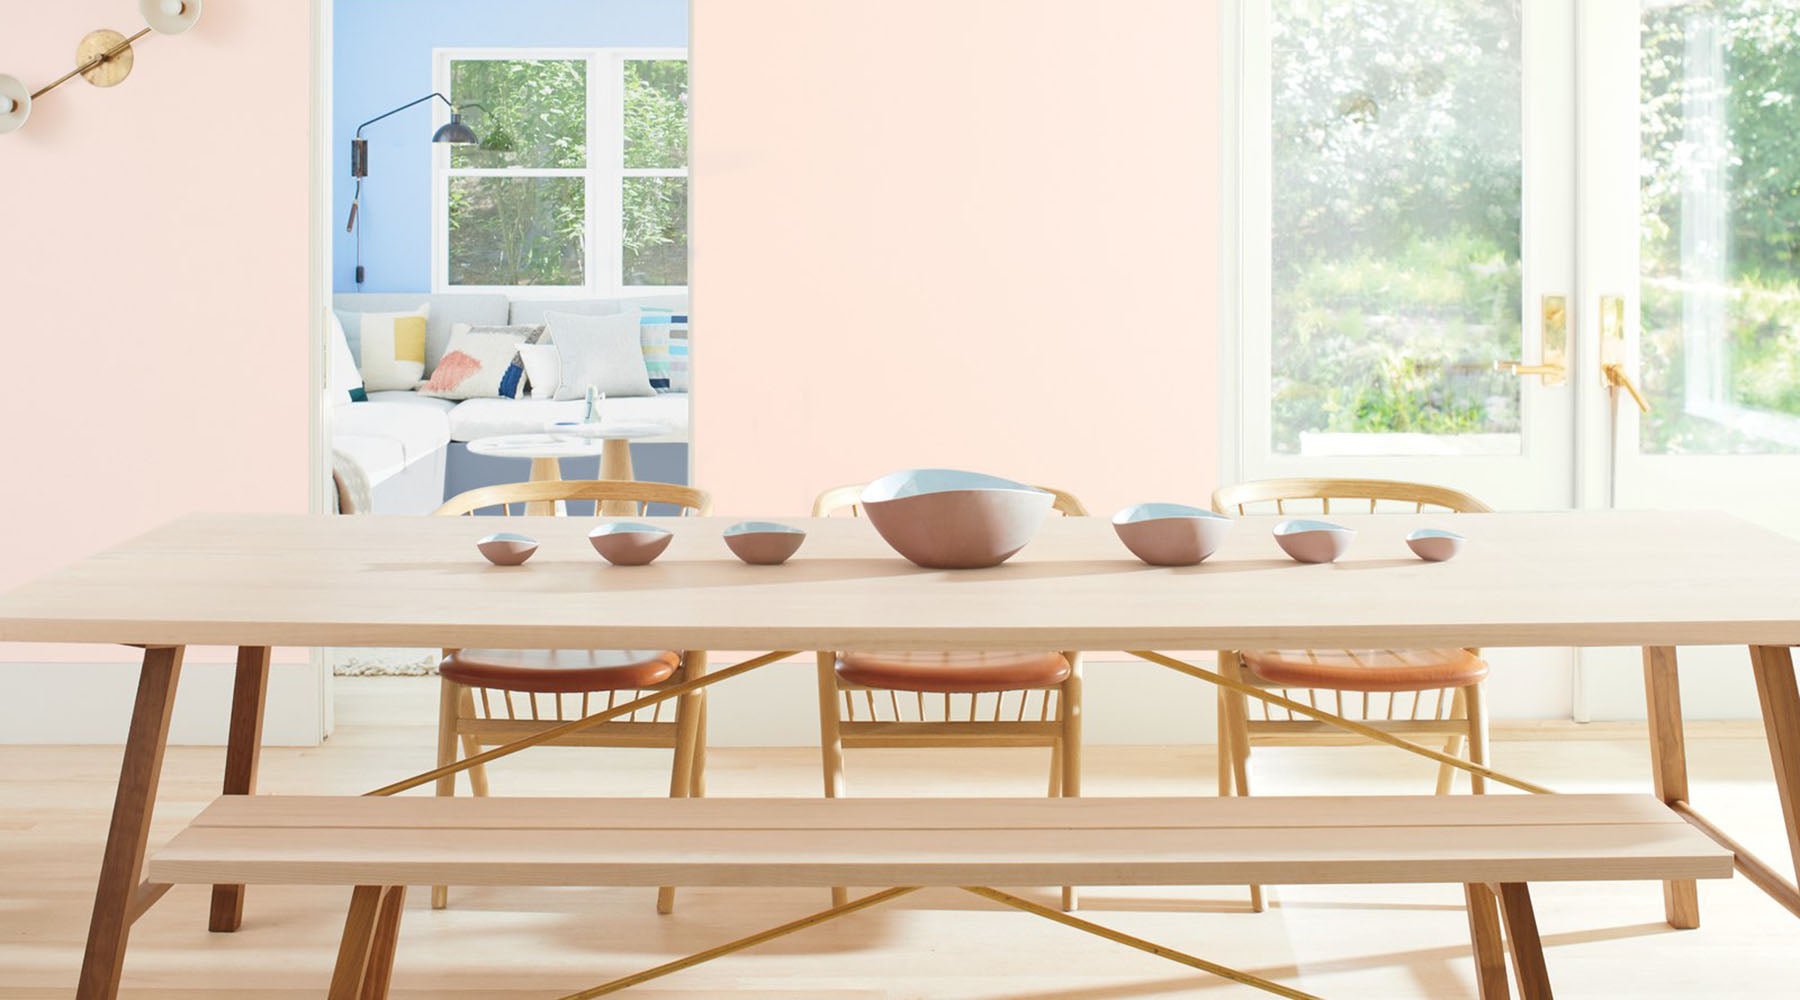 Benjamin Moore's Color of the Year 2020; First Light in a Dining Room